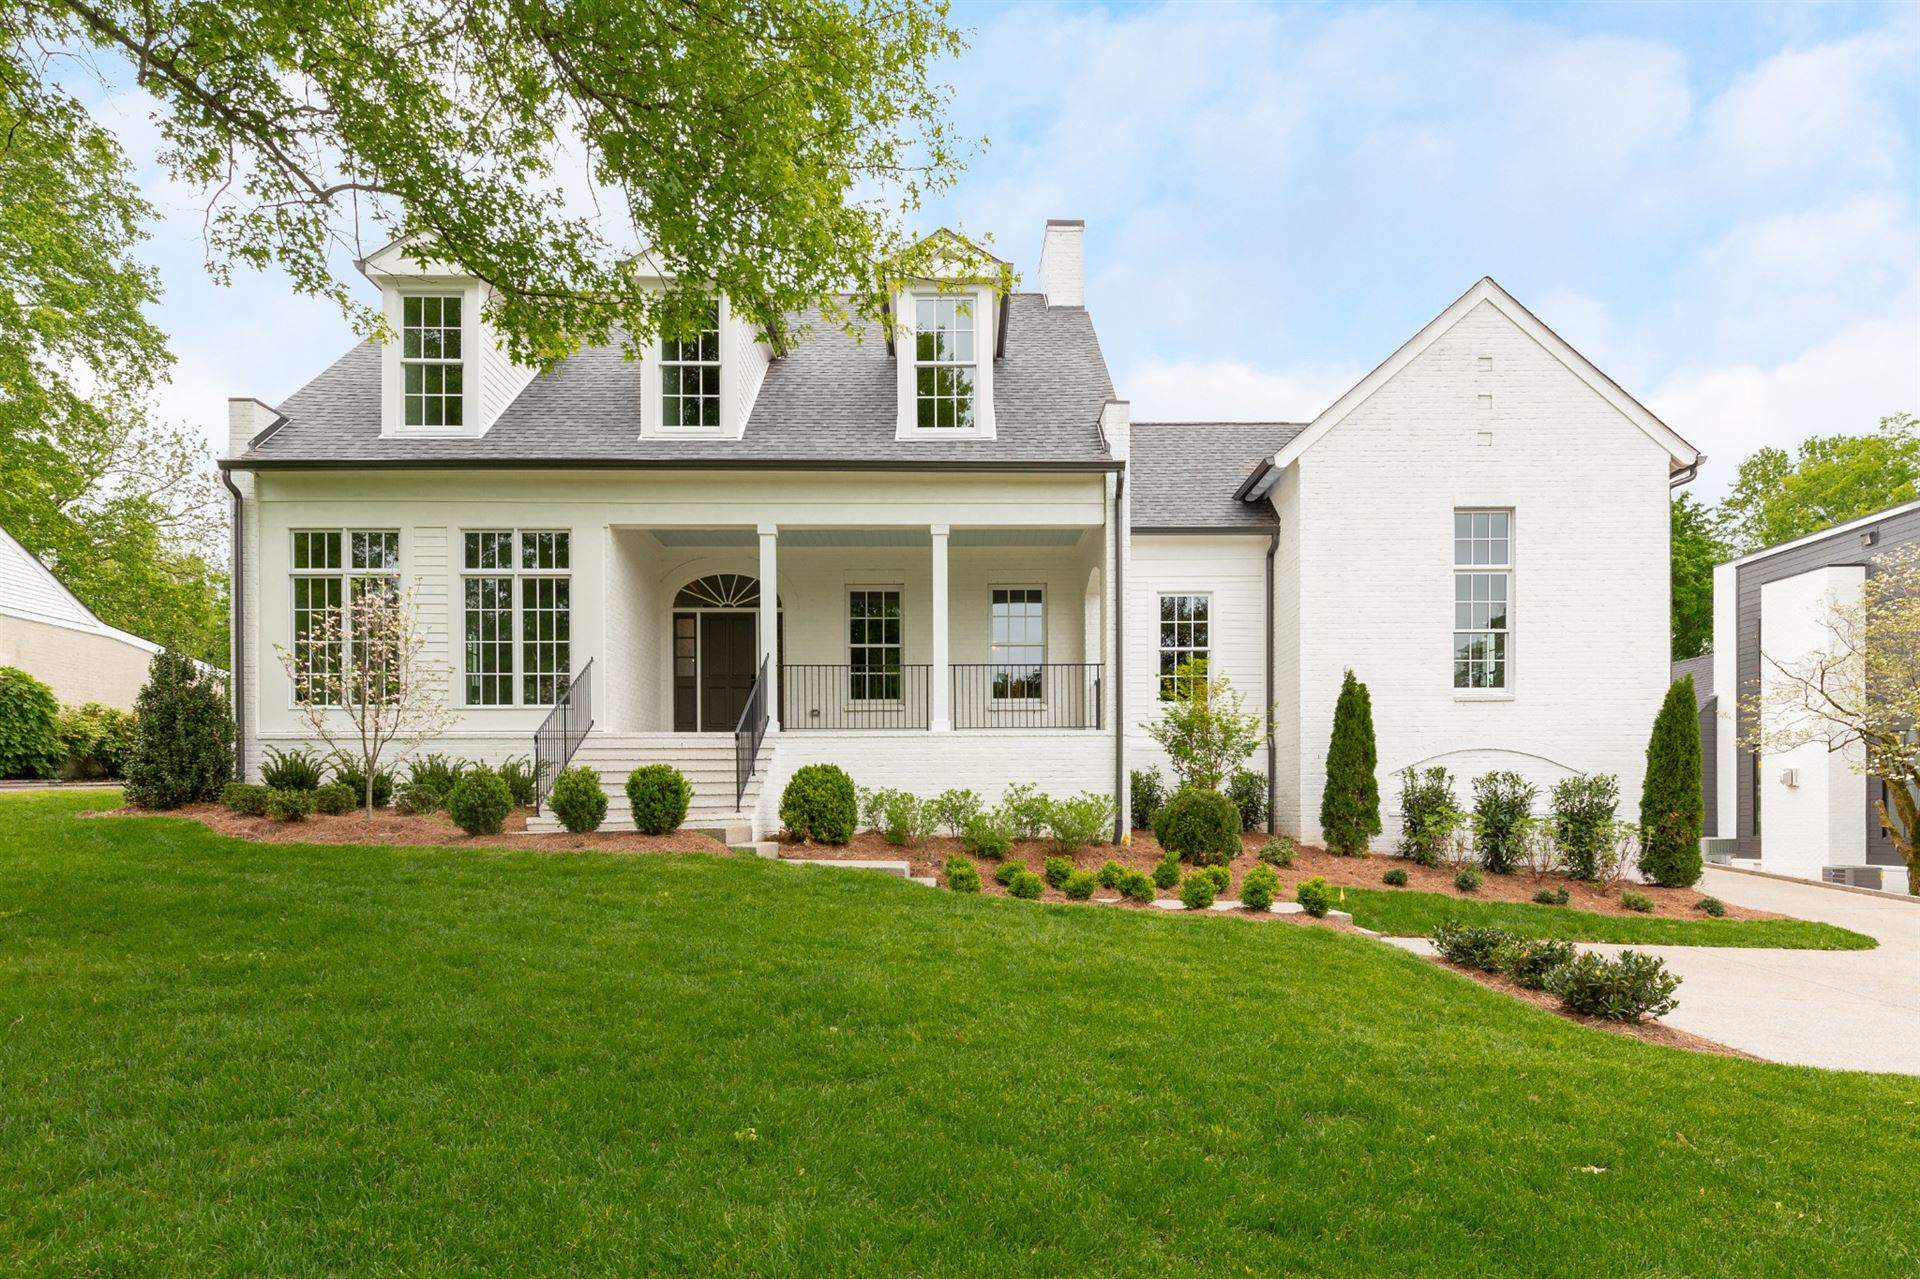 Photo of 4048 Outer Dr, Nashville, TN 37204 (MLS # 2136480)